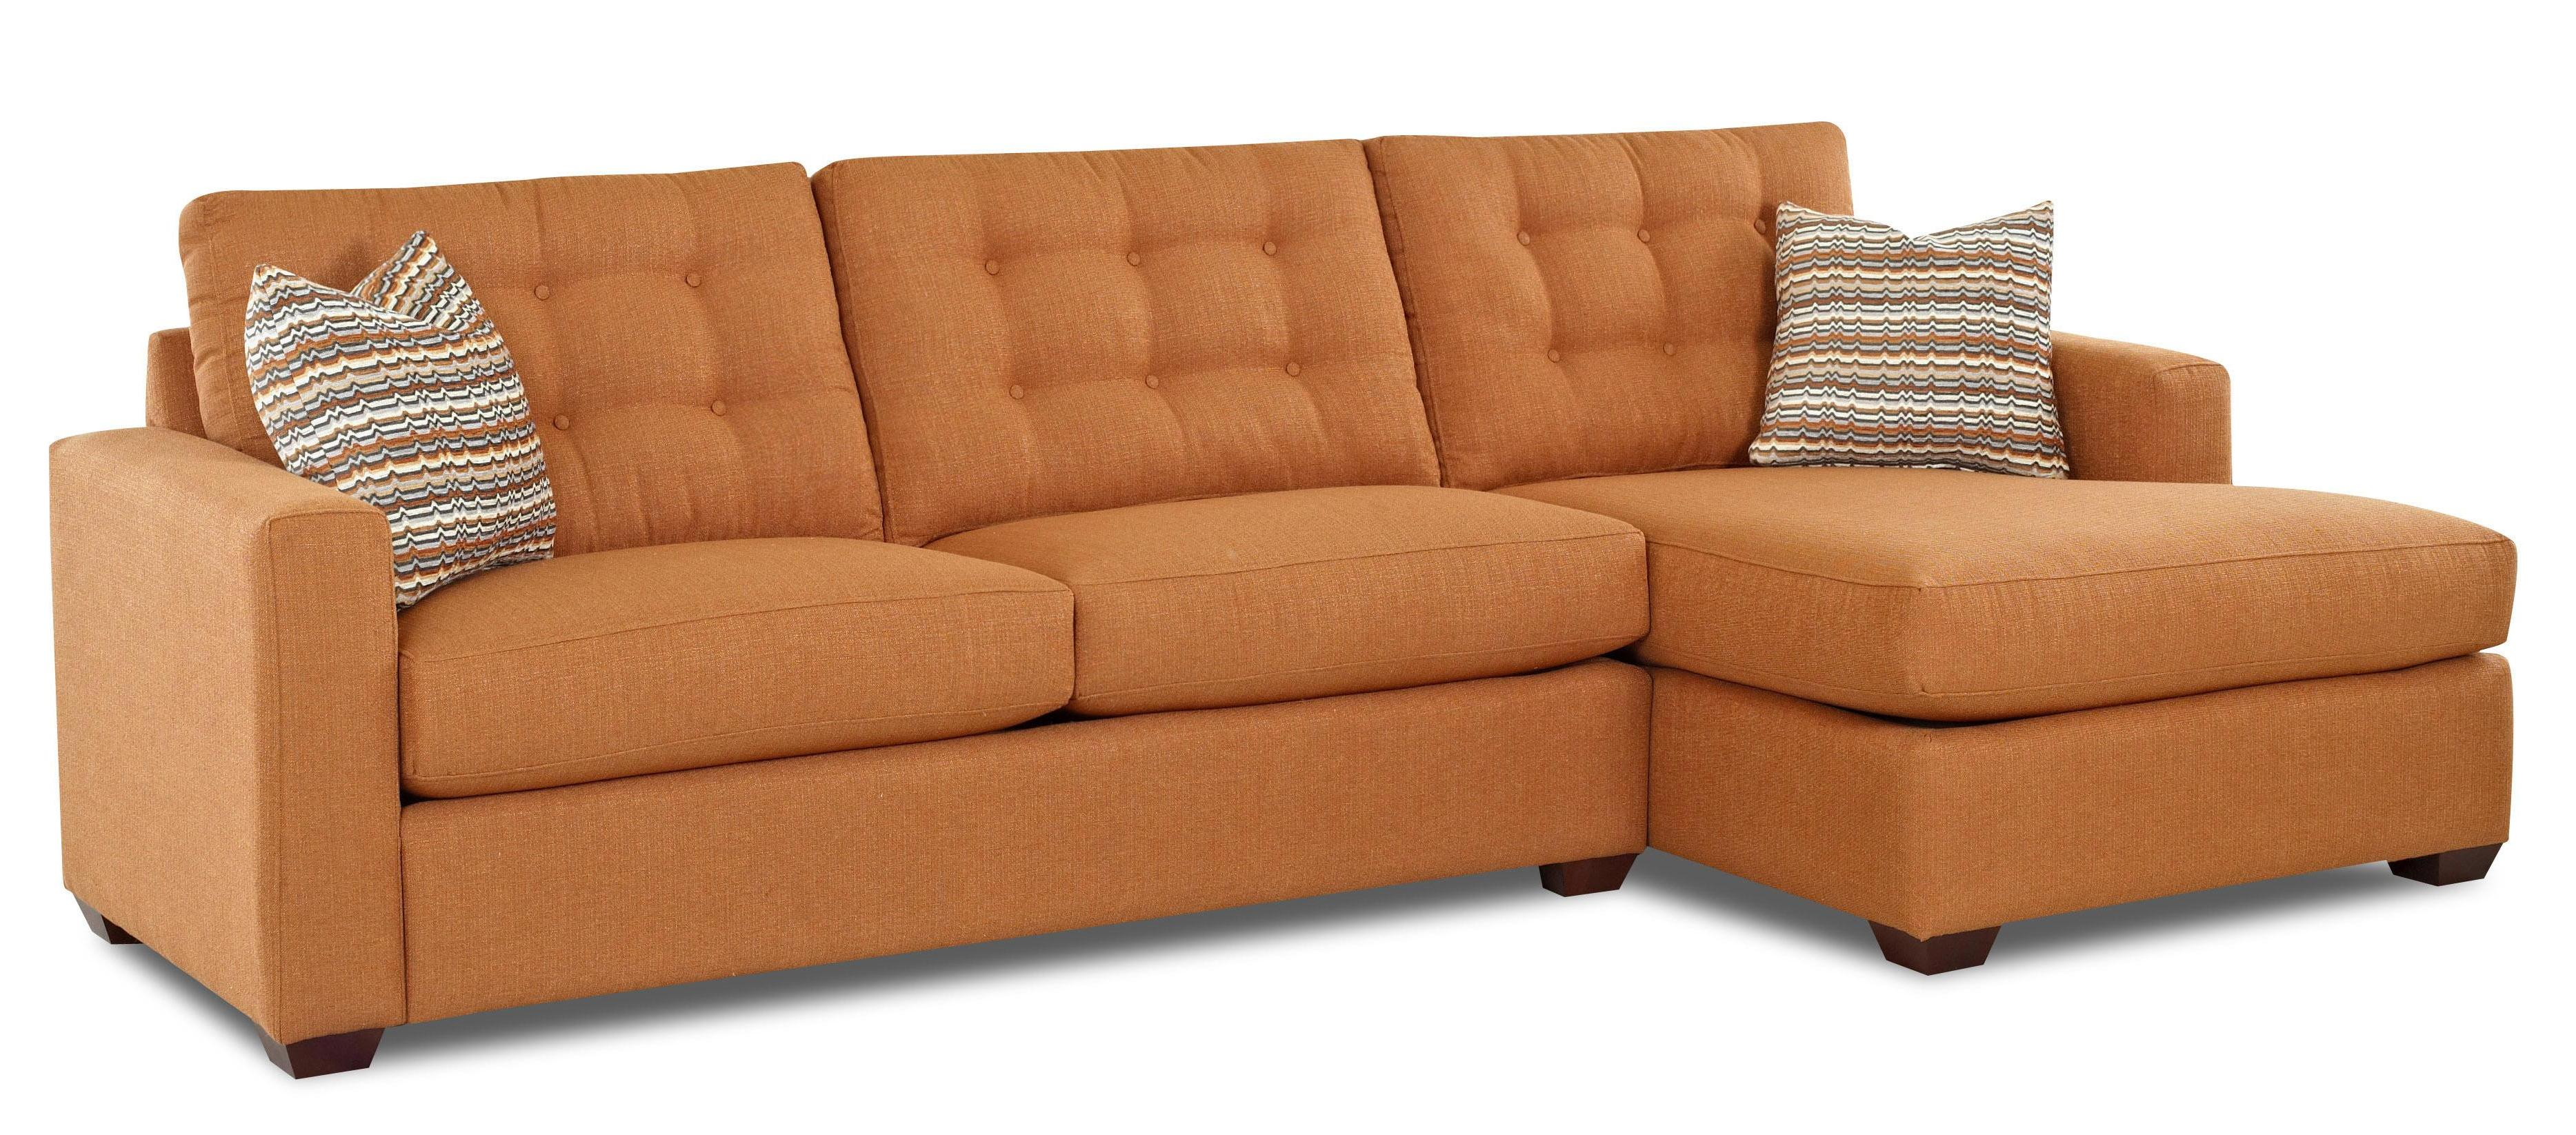 Klaussner Lido Contemporary Sectional Sofa with Right Facing